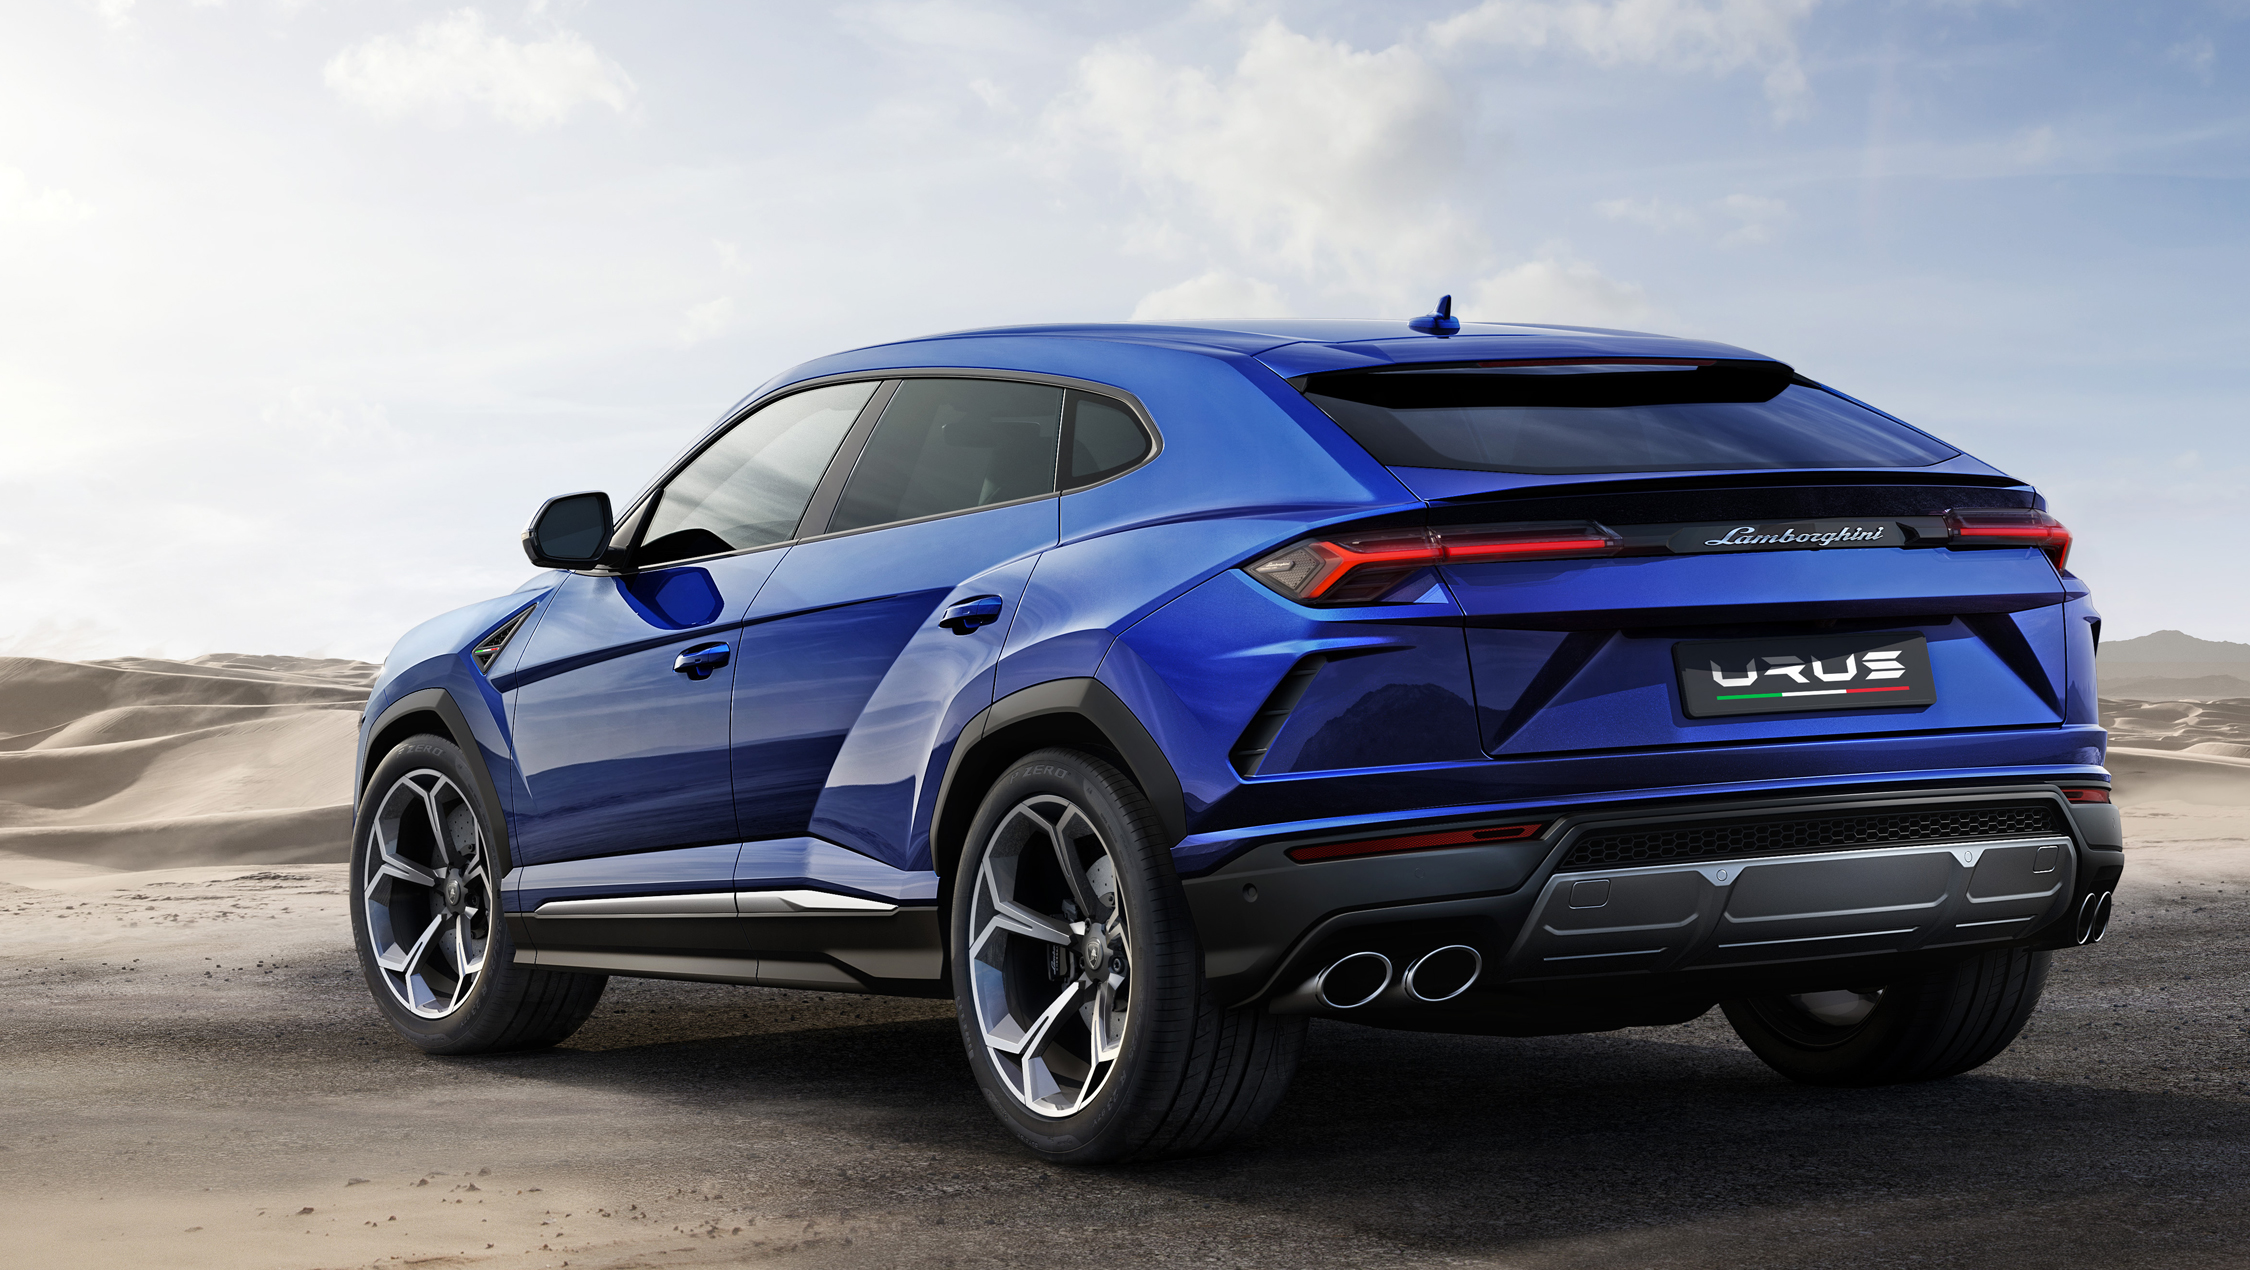 lamborghini urus les images du suv le plus rapide du monde enfin d voil es. Black Bedroom Furniture Sets. Home Design Ideas